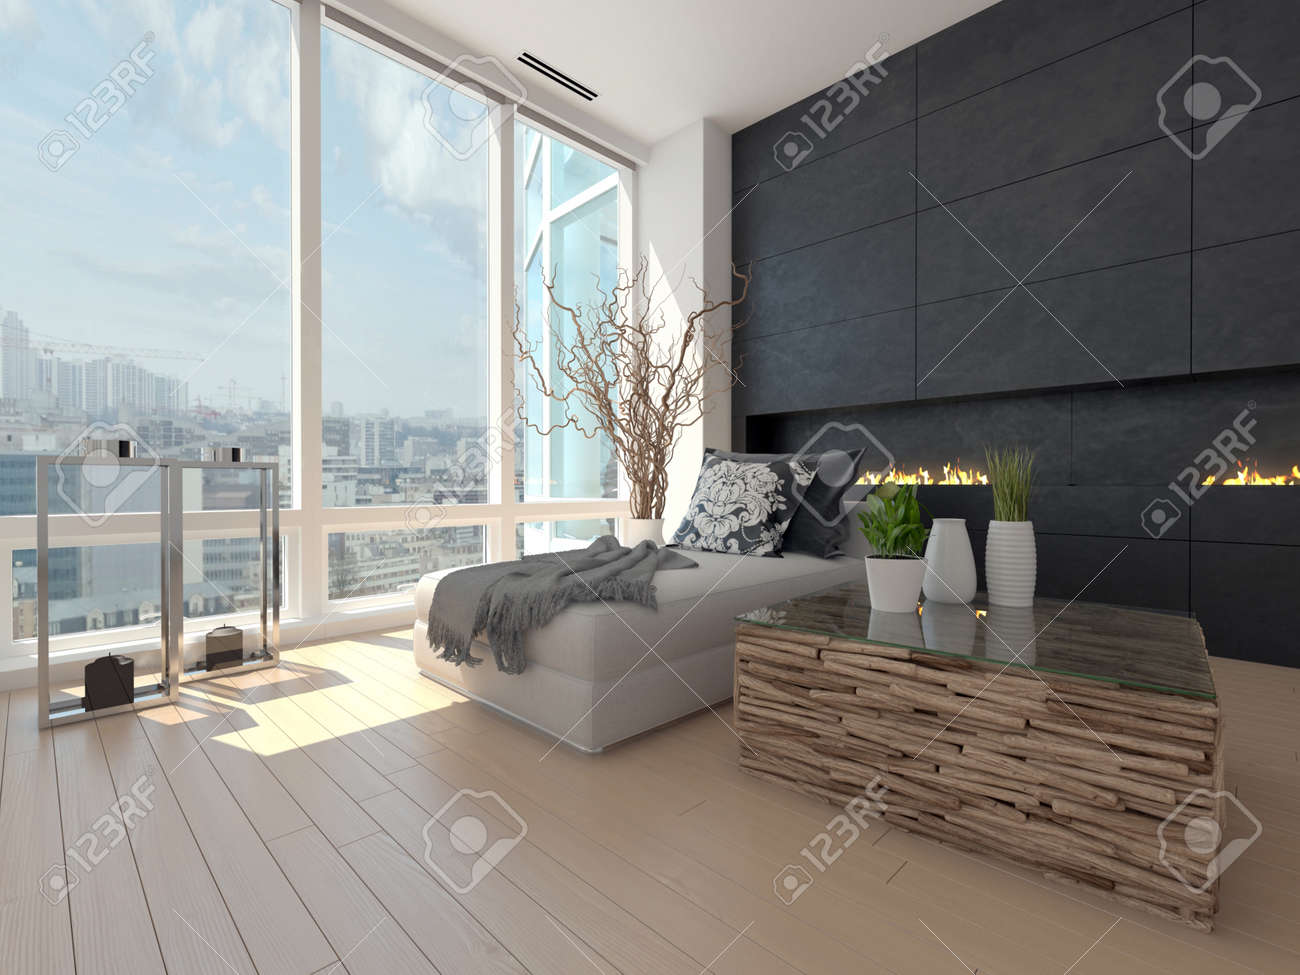 Modern Design Living Room With Cityscape View Stock Photo, Picture ...